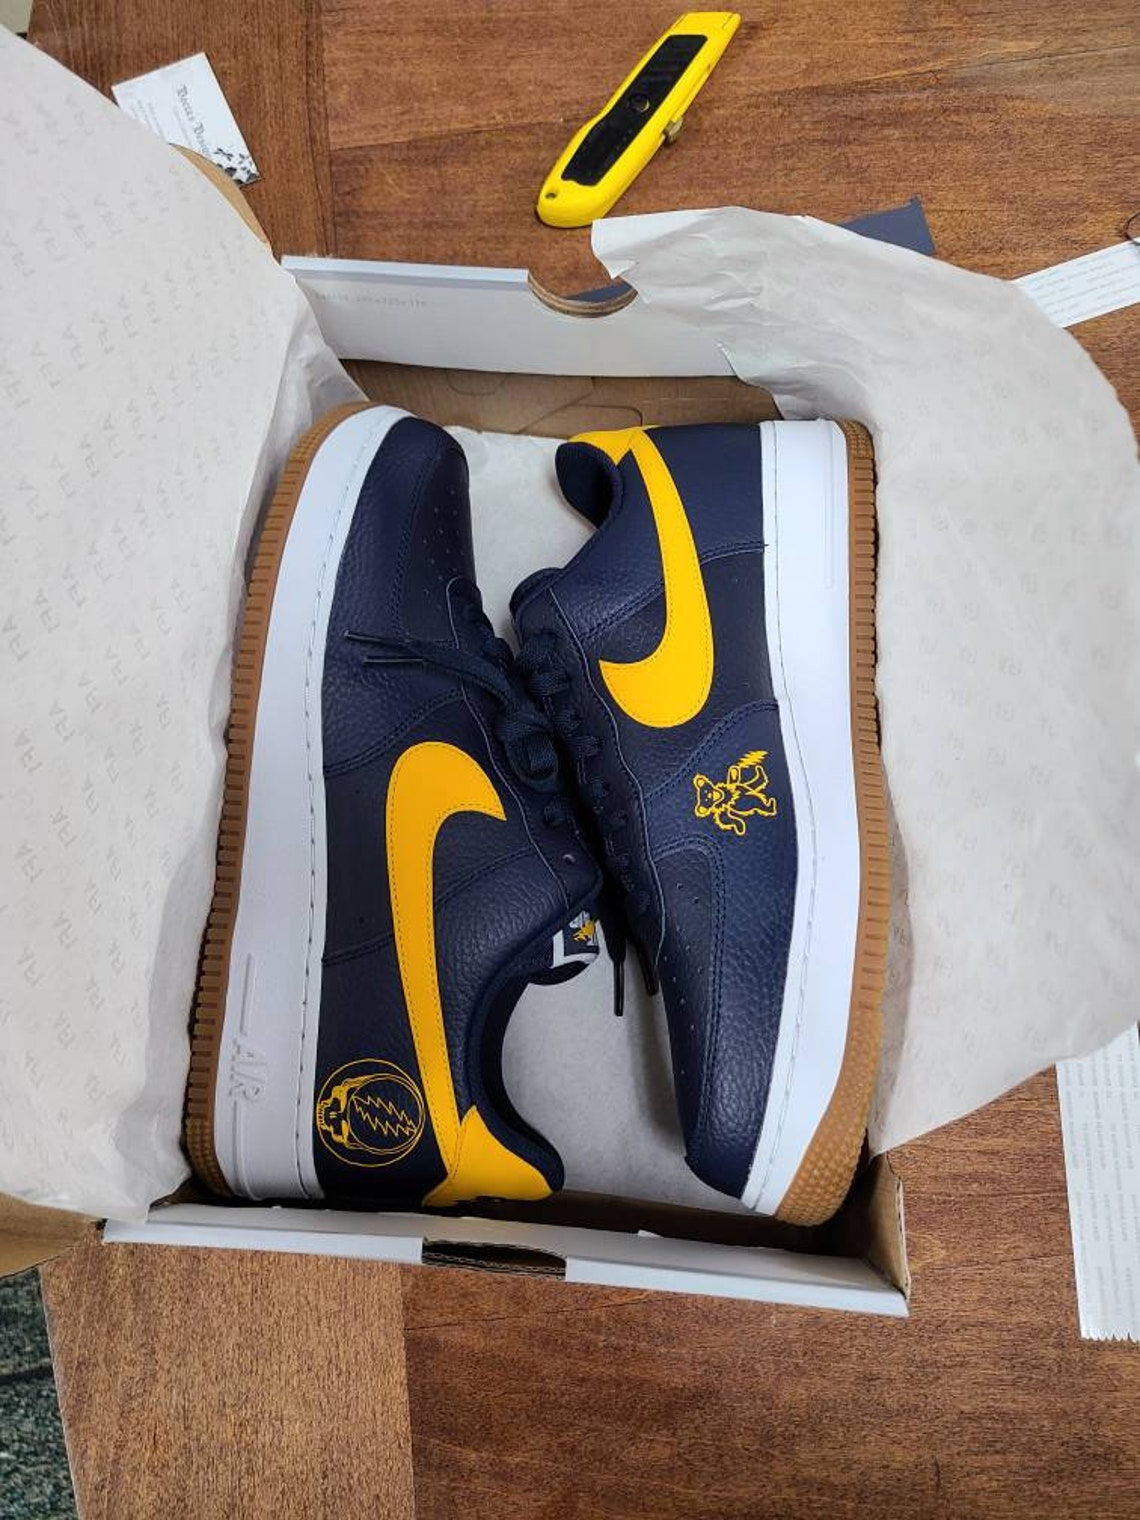 CUSTOM  Dead Air Force 1s navy blue and yellow